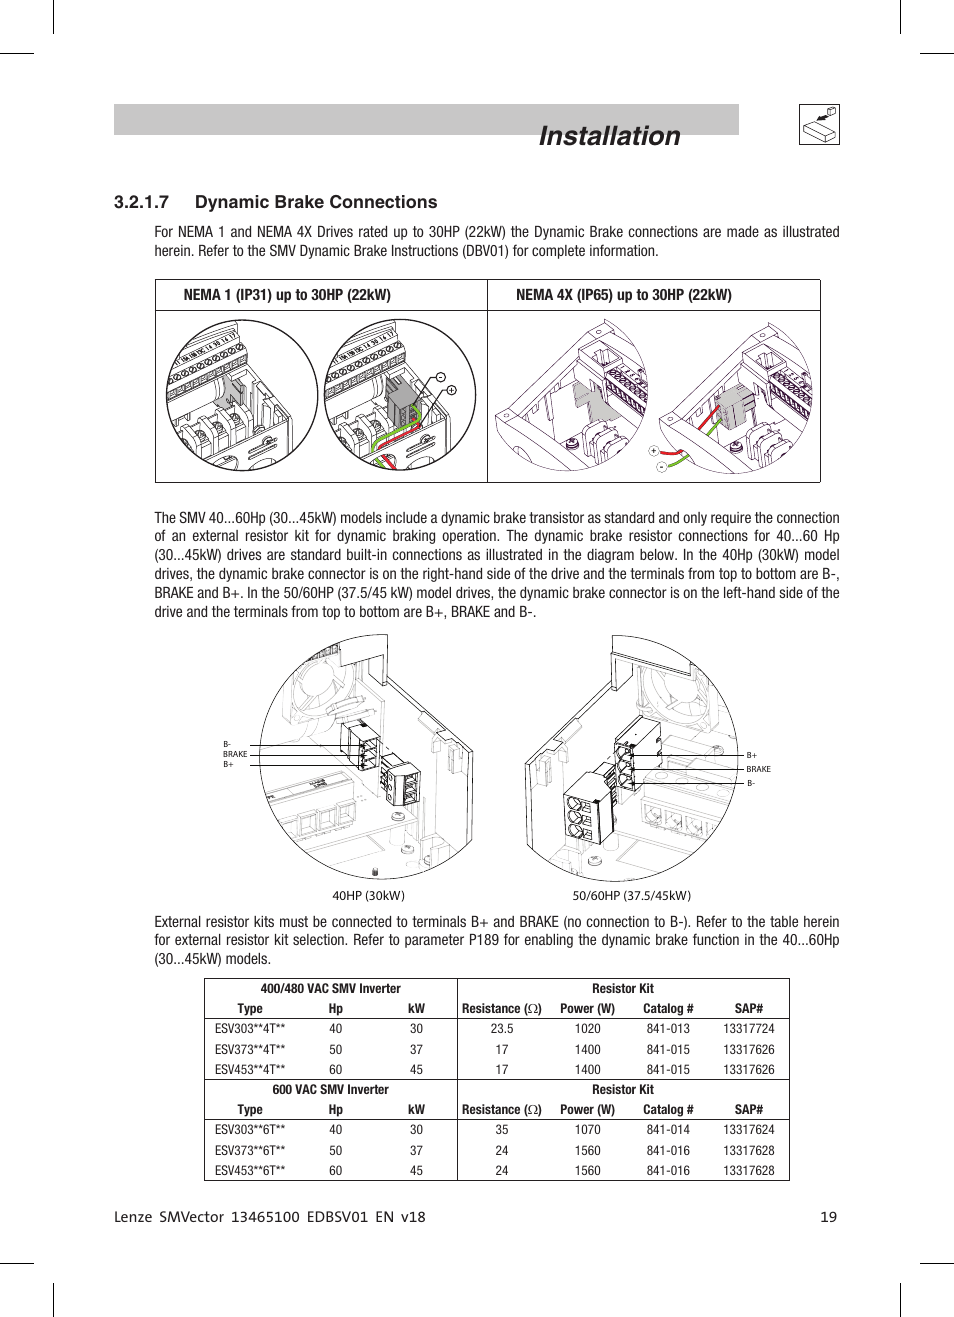 hight resolution of installation 7 dynamic brake connections lenze esv smv frequency inverter user manual page 21 66